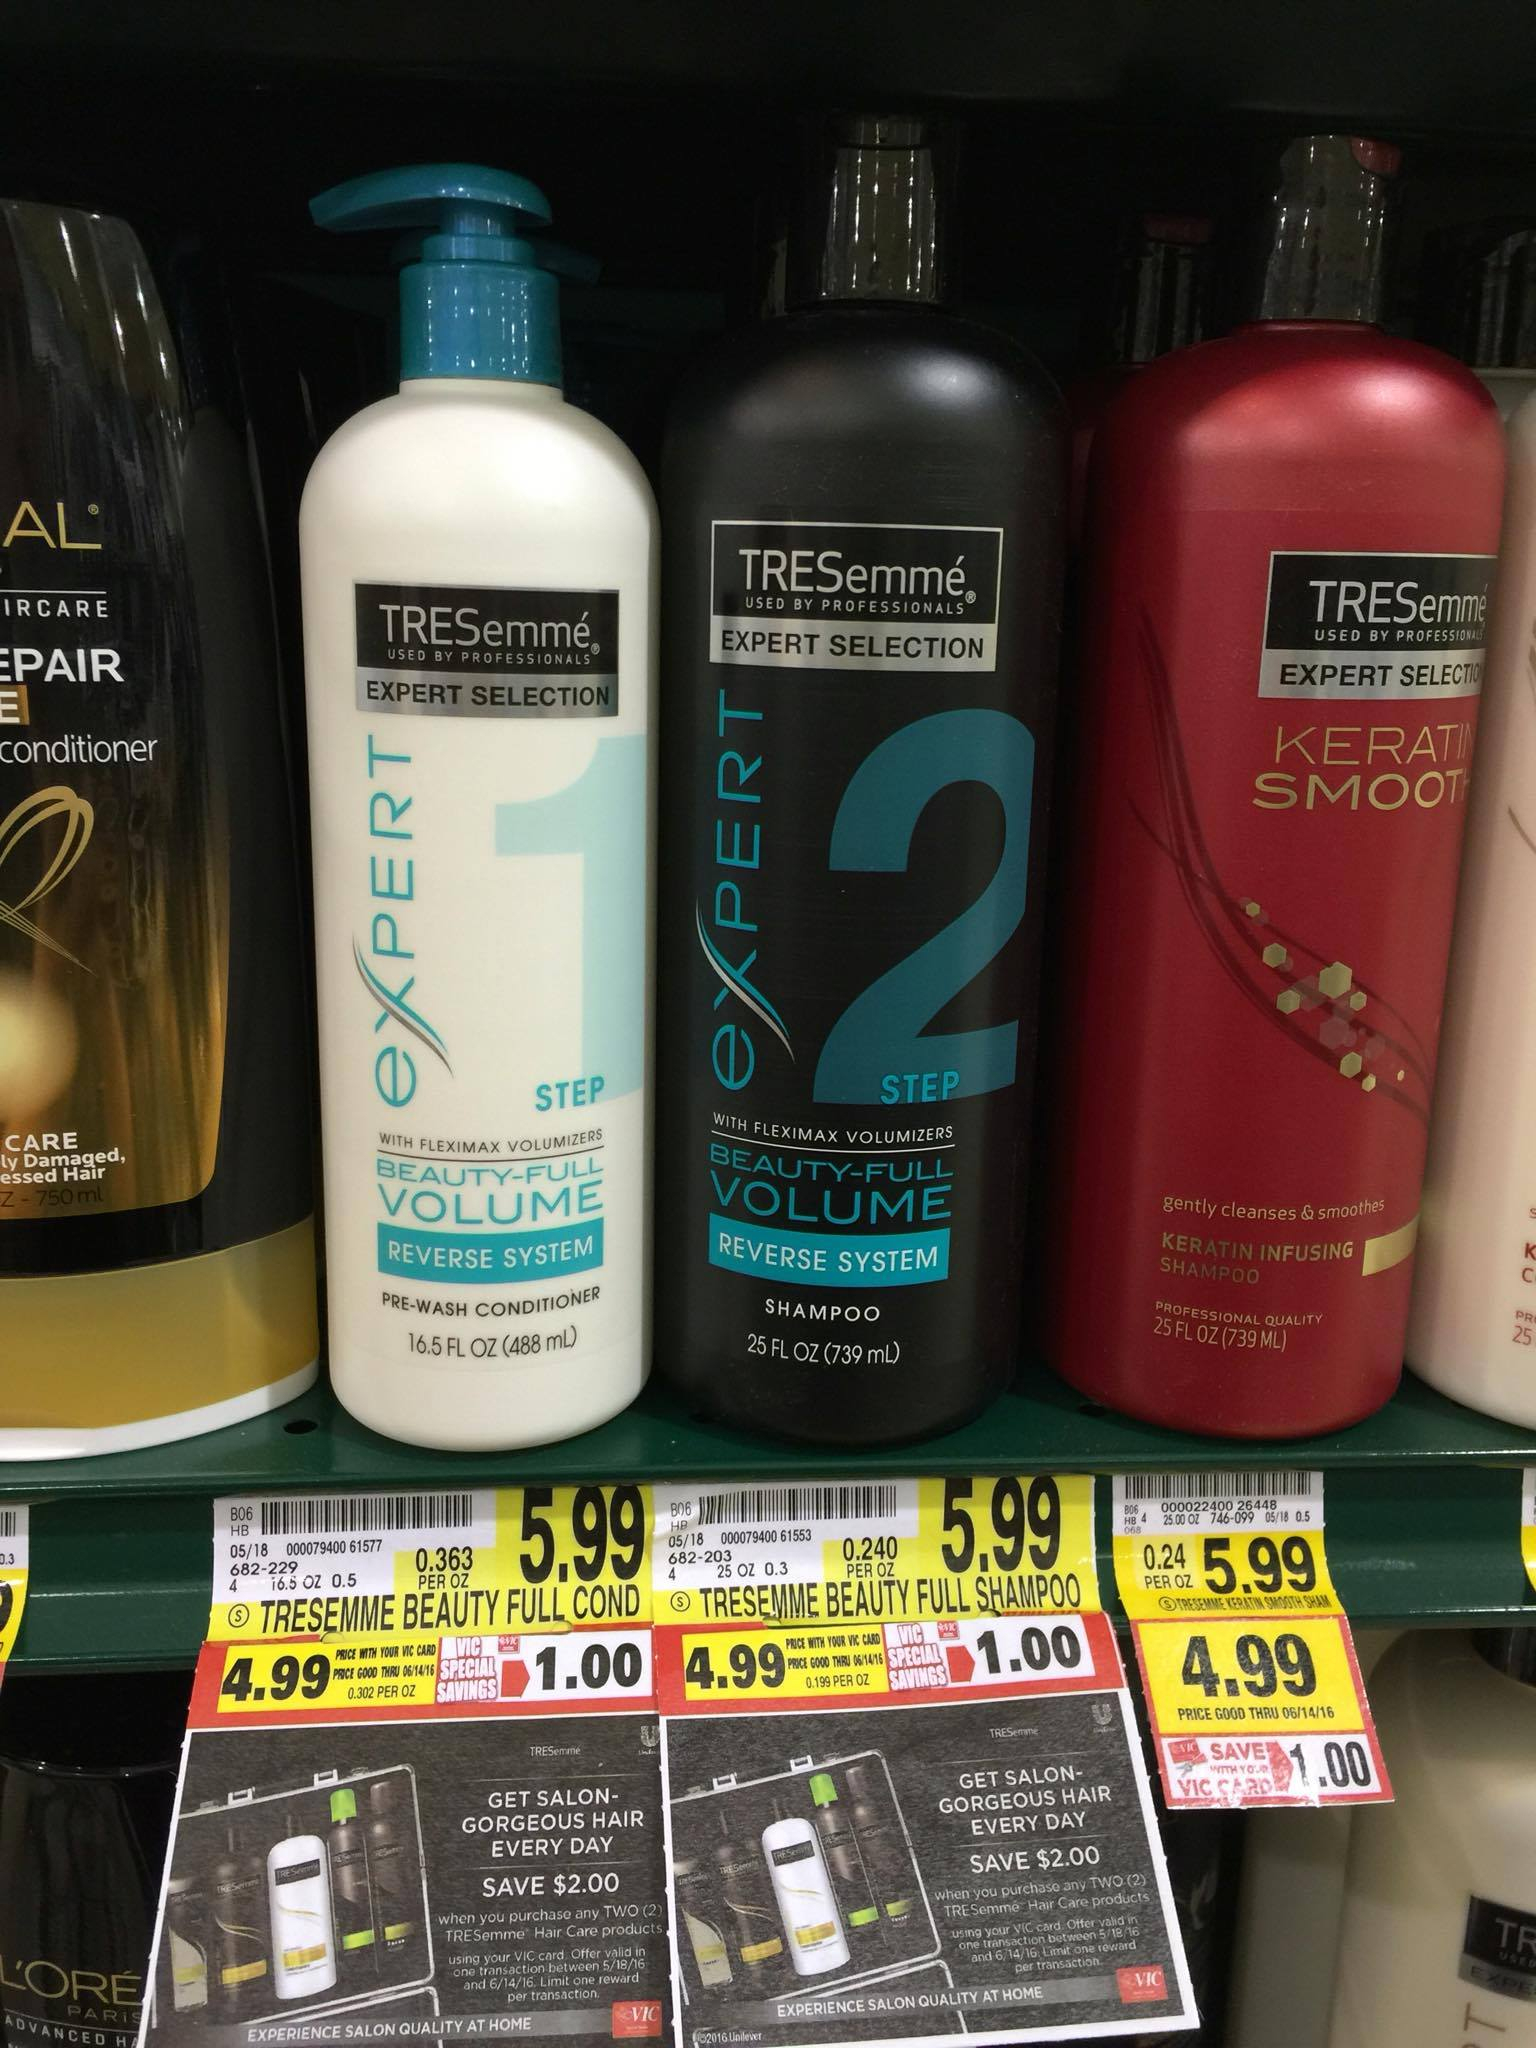 Possibly? Free Tresemme Expert Reverse System! - The Harris Teeter Deals - Free Printable Tresemme Coupons